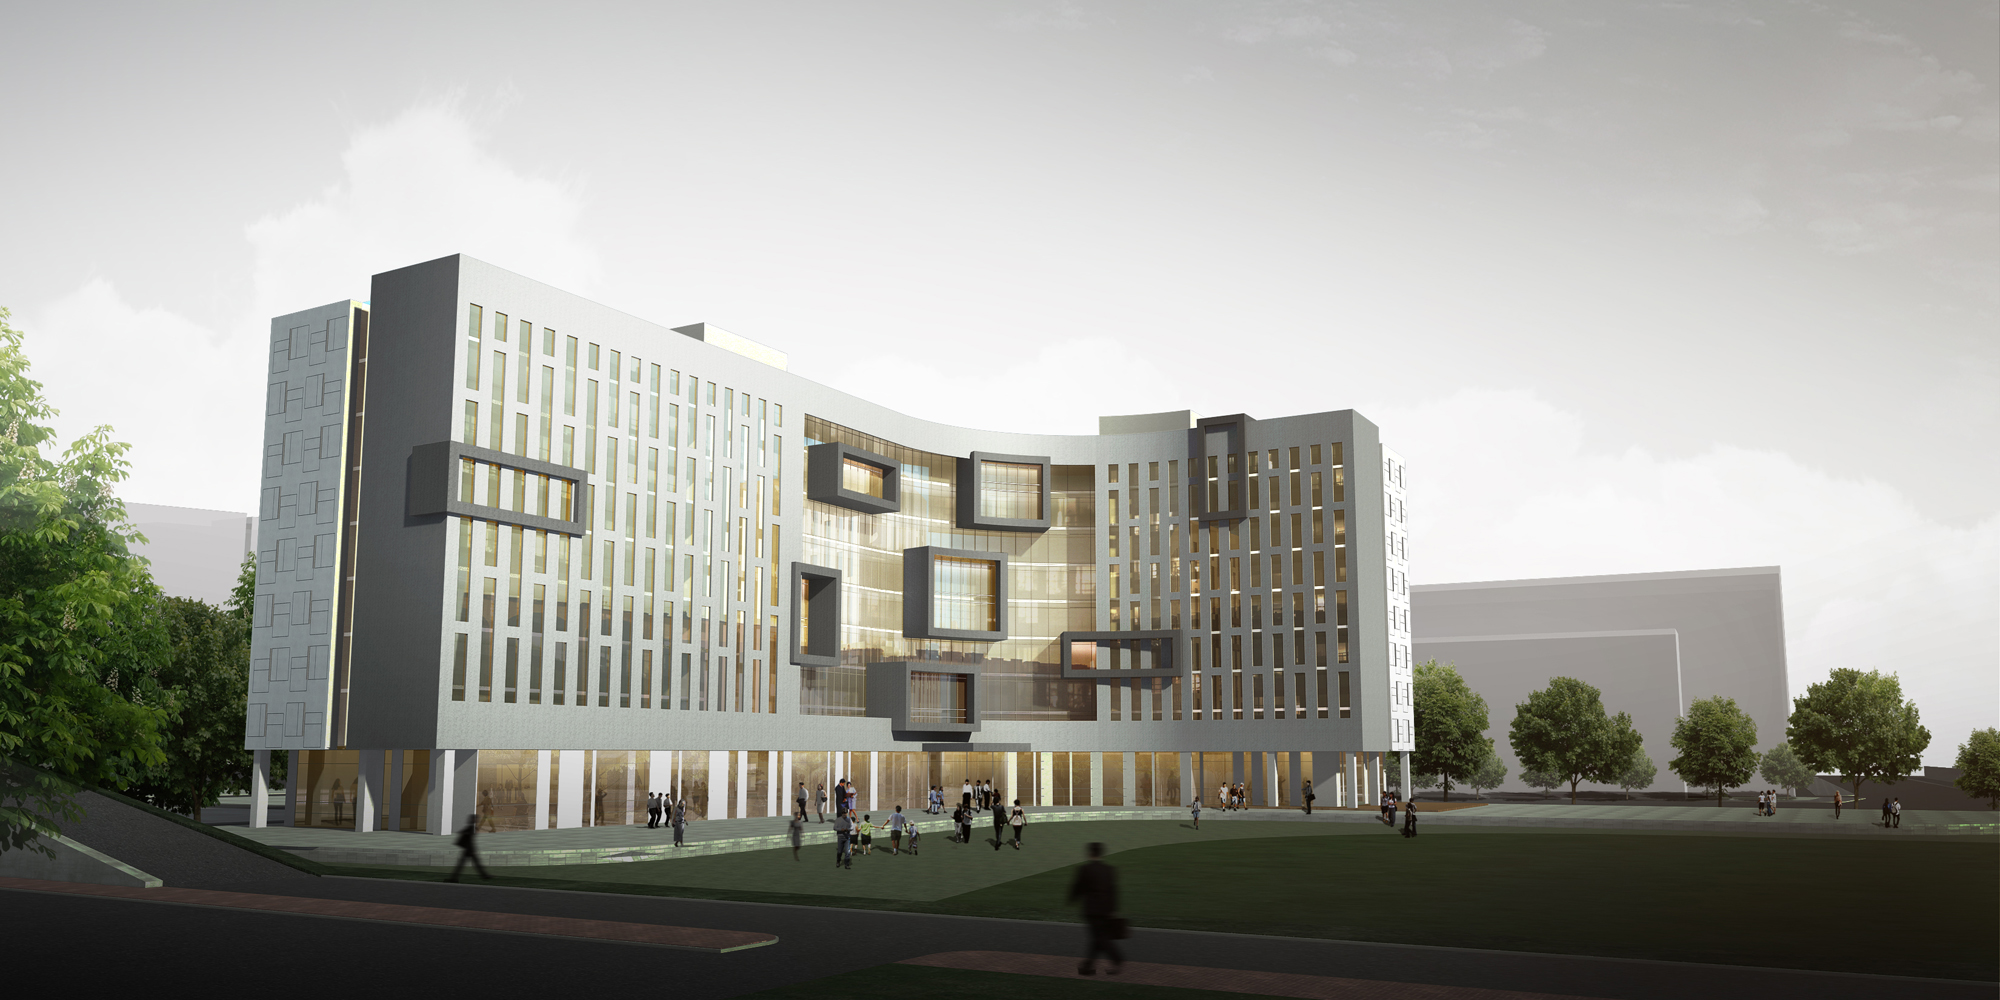 Inha College Dormitory Voyd Visualization Of Younique Design